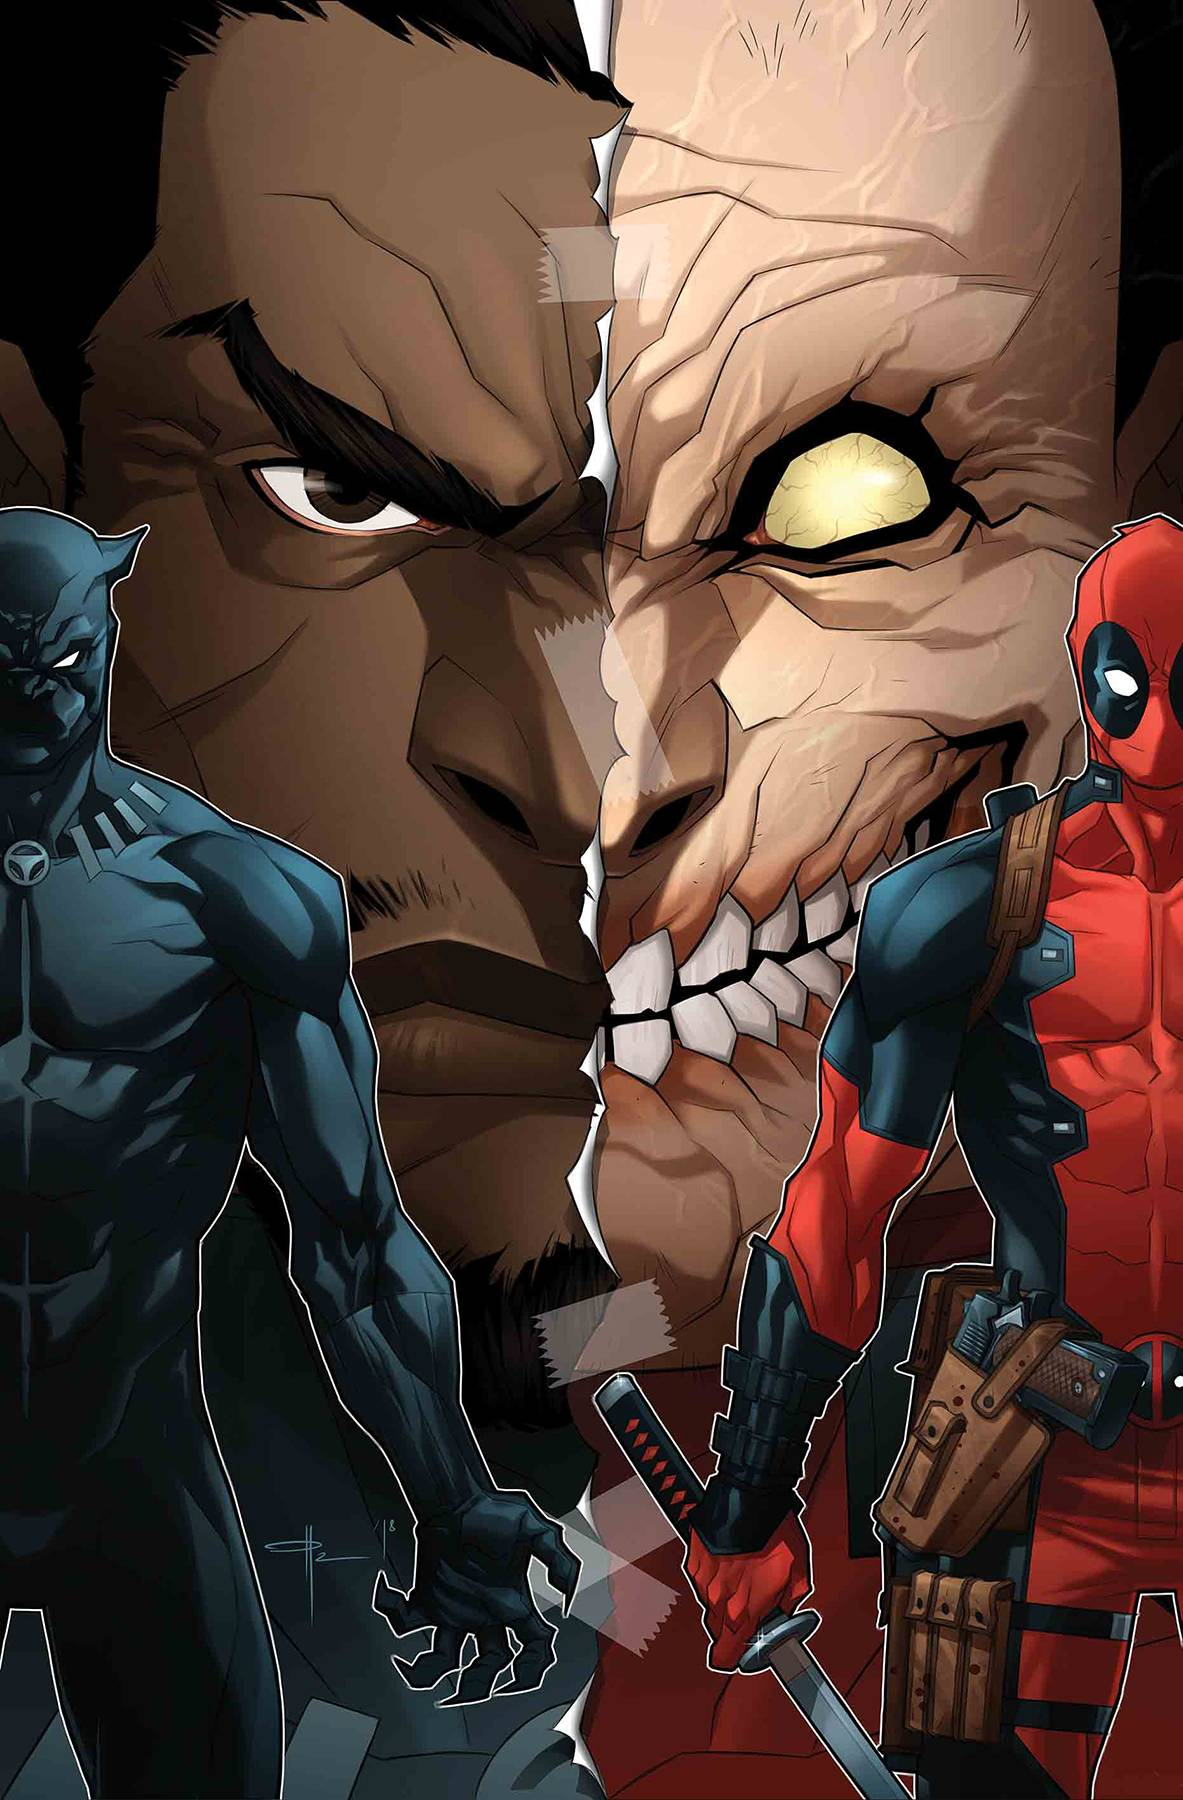 Black Panther Vs Deadpool #3 (of 5) Ozgur Yildirim Cover